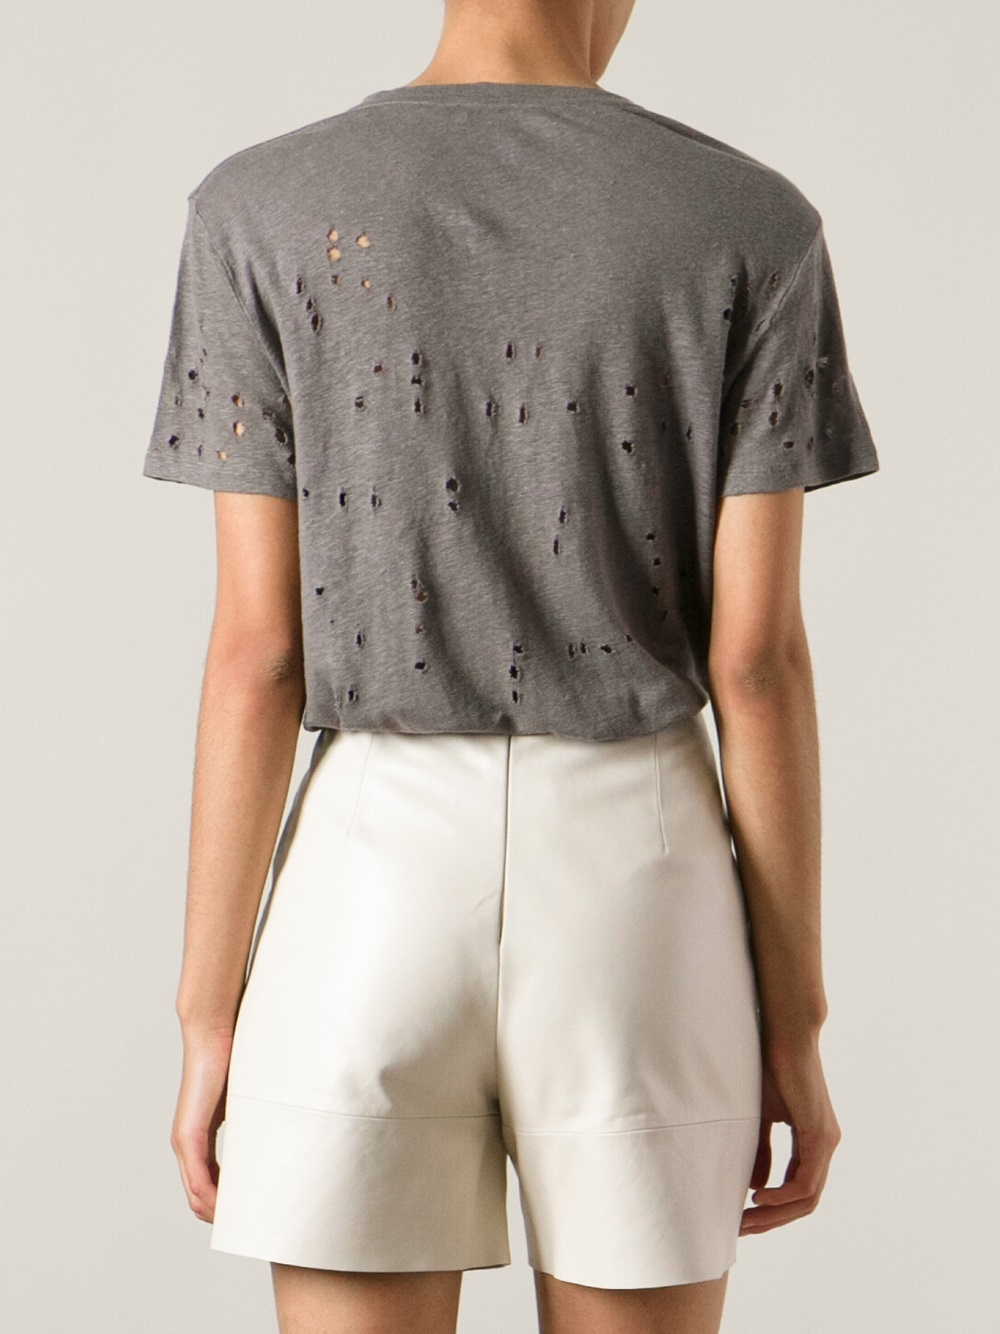 Lyst iro distressed t shirt in gray for How to make a distressed shirt